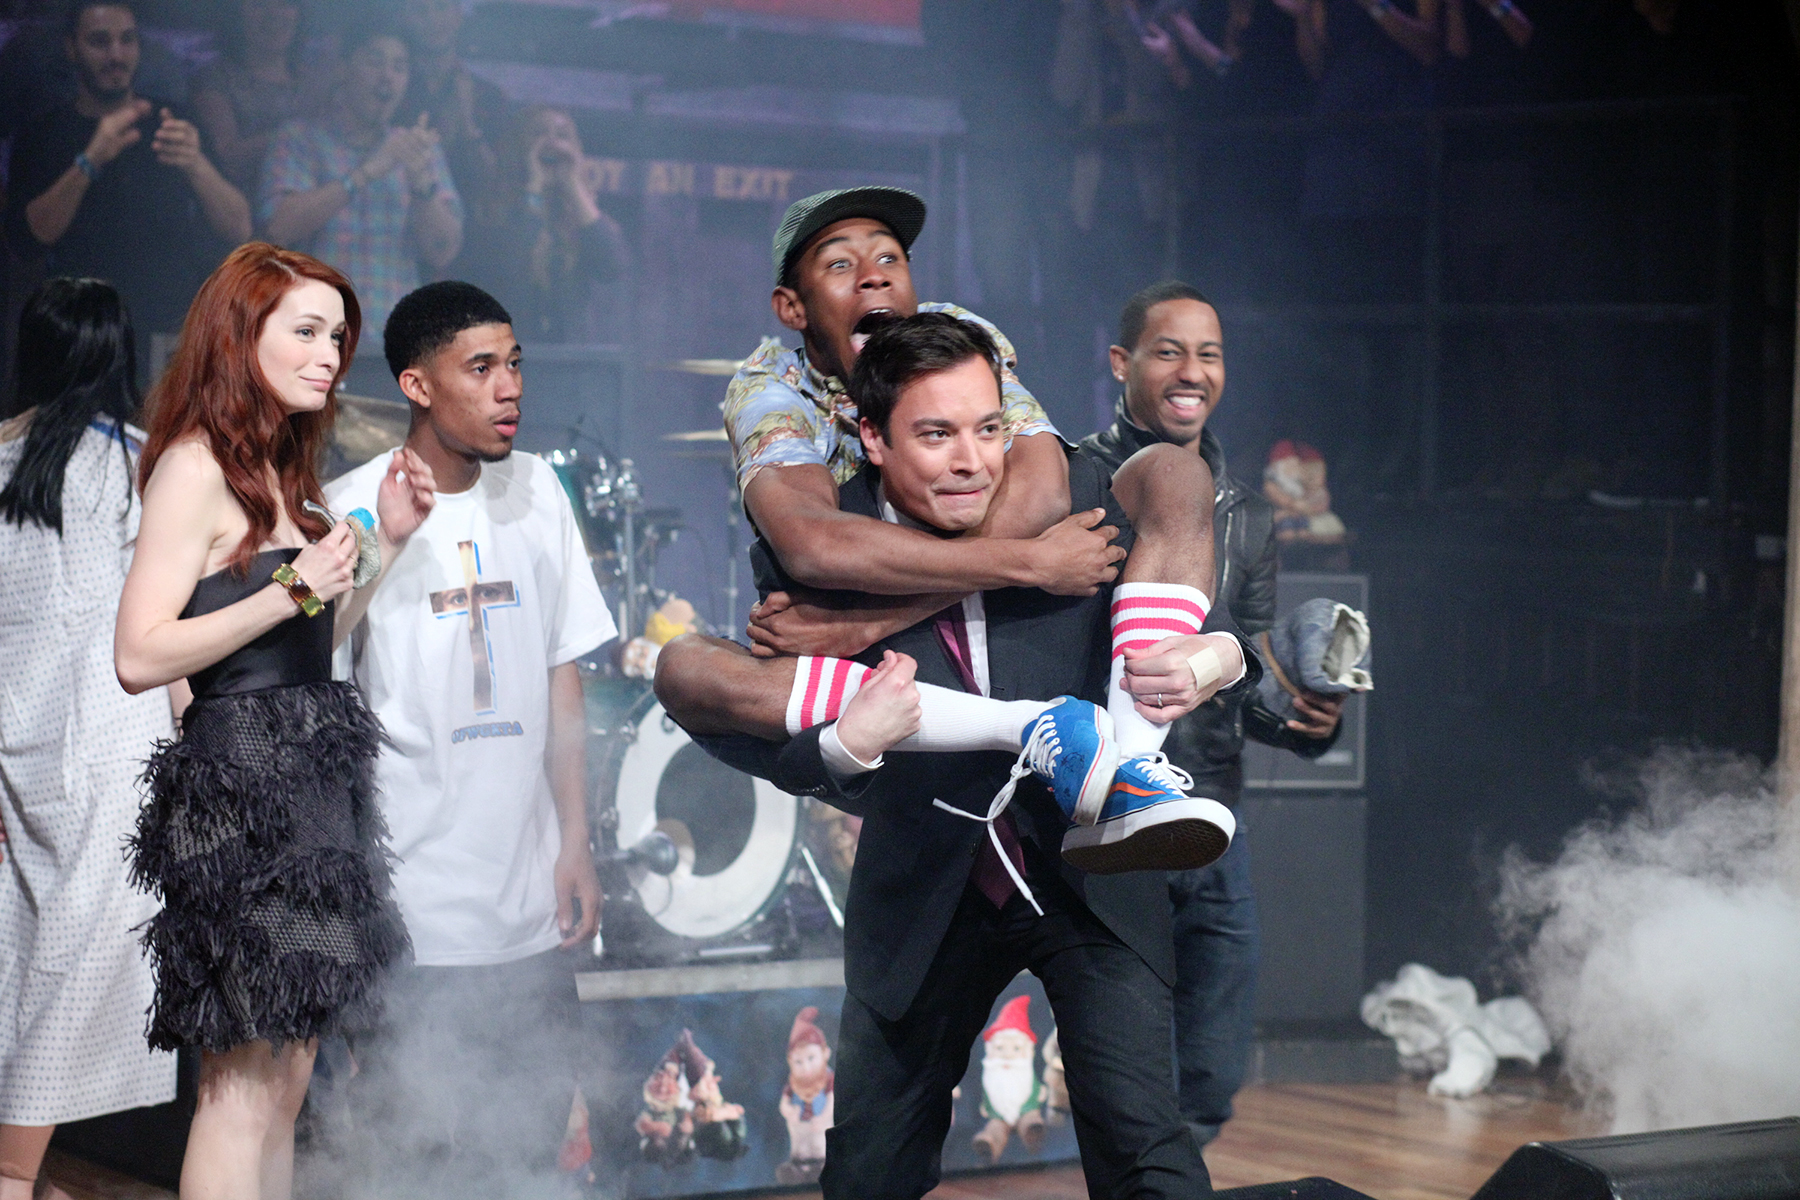 How Odd Future's Jimmy Fallon Debut Brought Tumblr Energy To The Mainstream - Rolling Stone